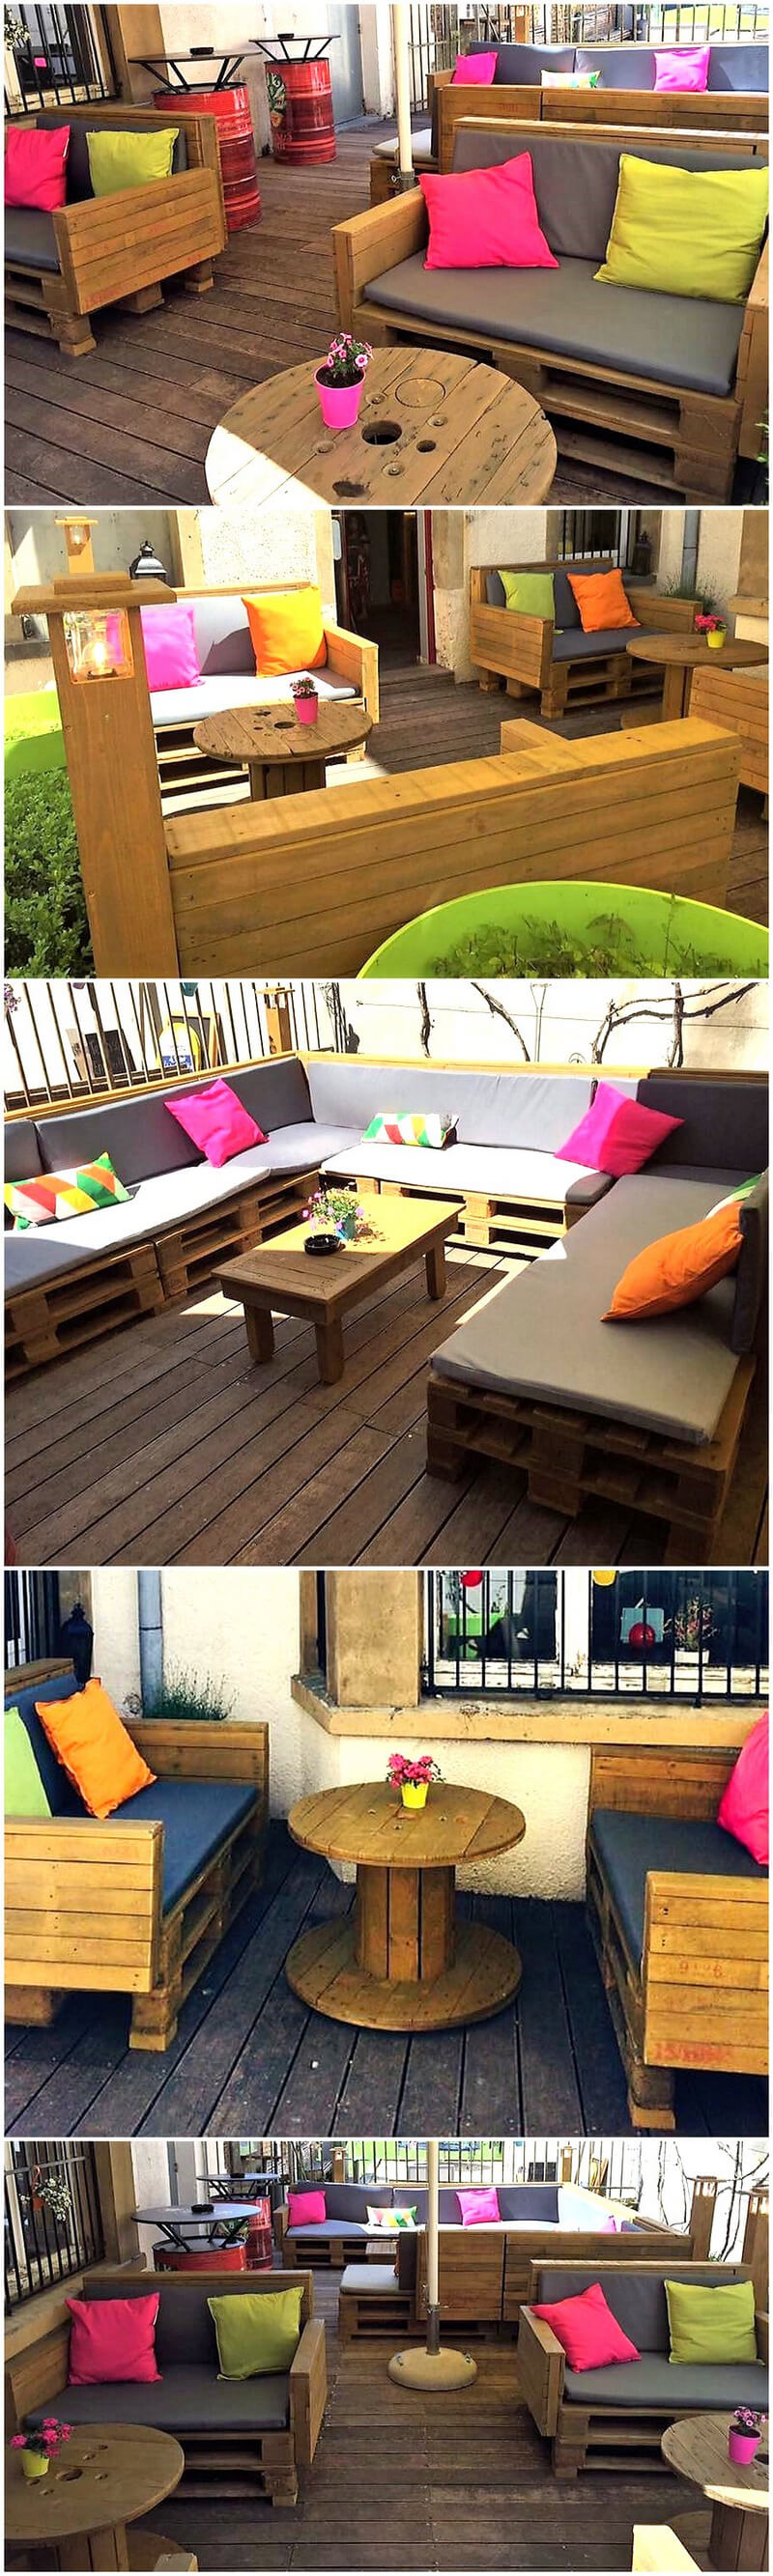 recycled pallets restaurant outdoor furniture